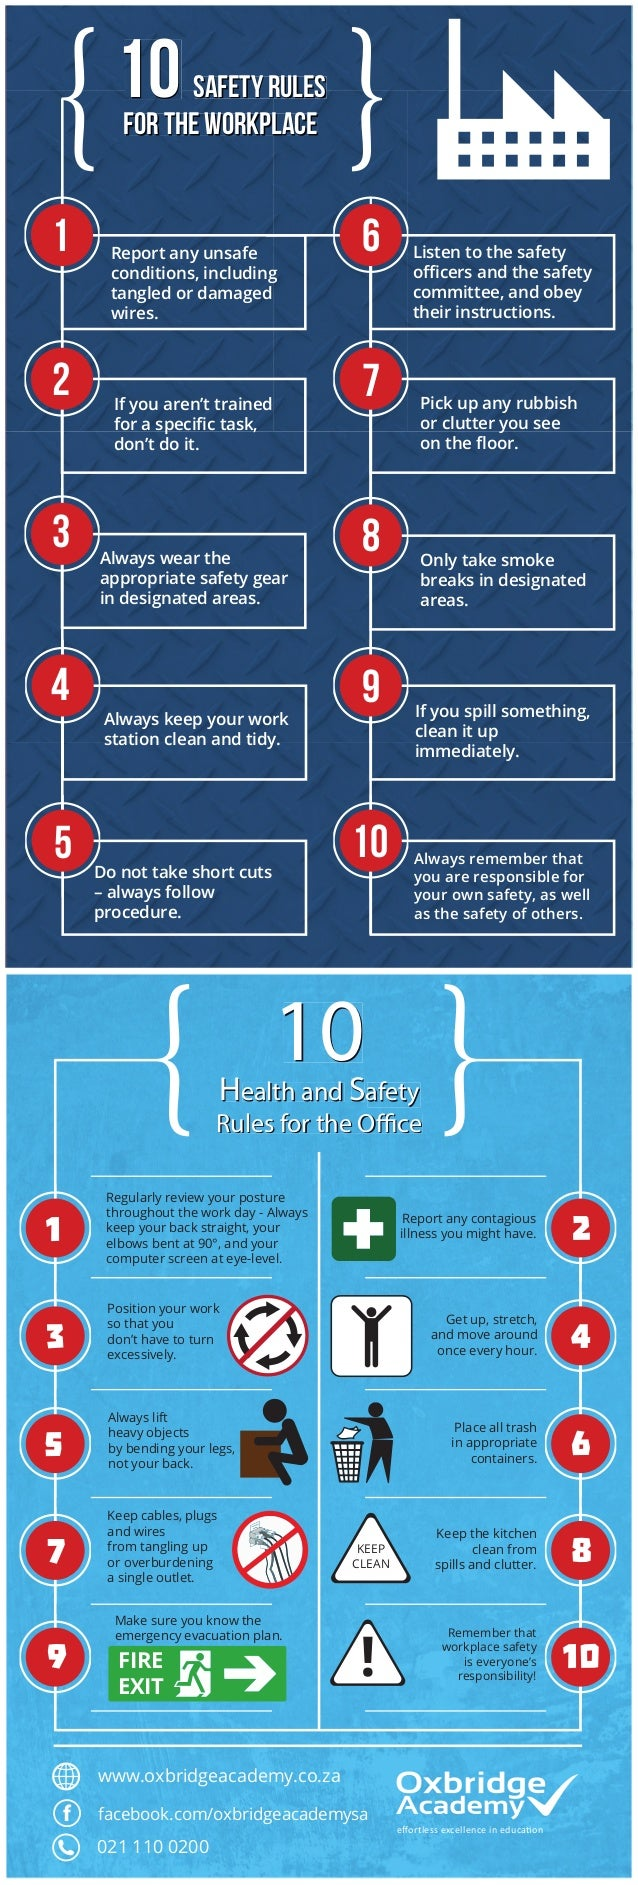 10 safety rules for the workplace 10 safety rules for the workplace 1 2 3 4 5 6 7 8 9 10 Report any unsafe conditions, inc...